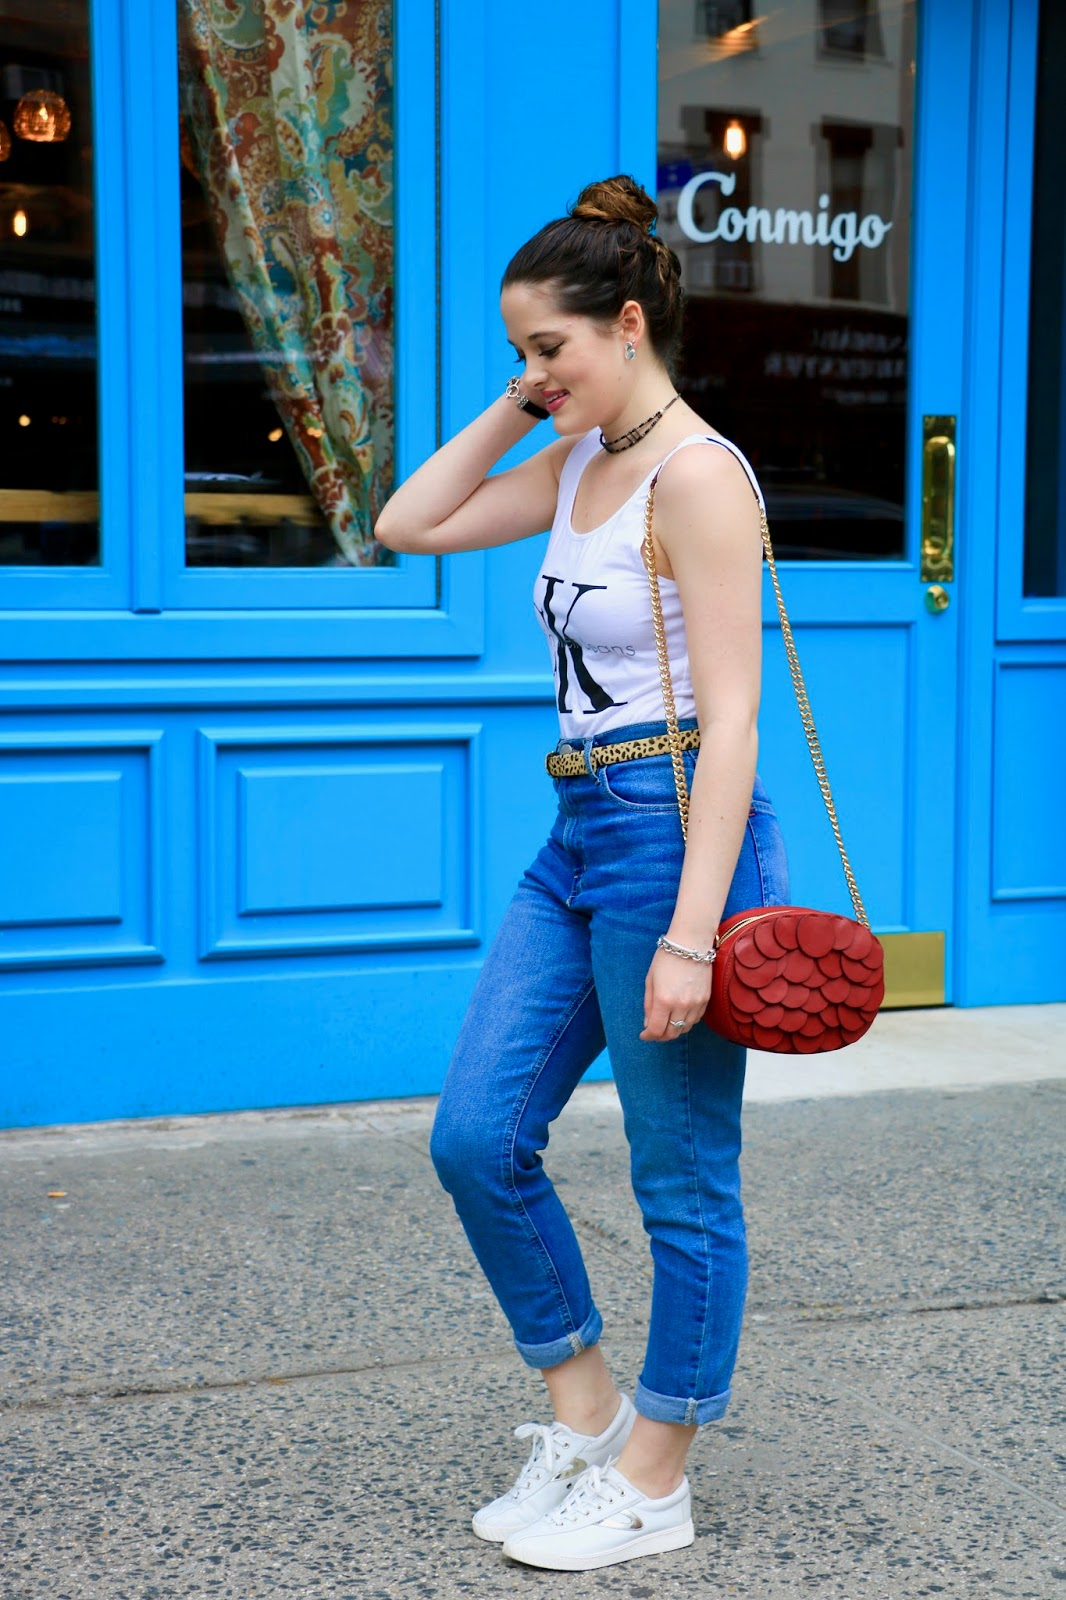 NYC fashion blogger Kathleen Harper wearing spring street style